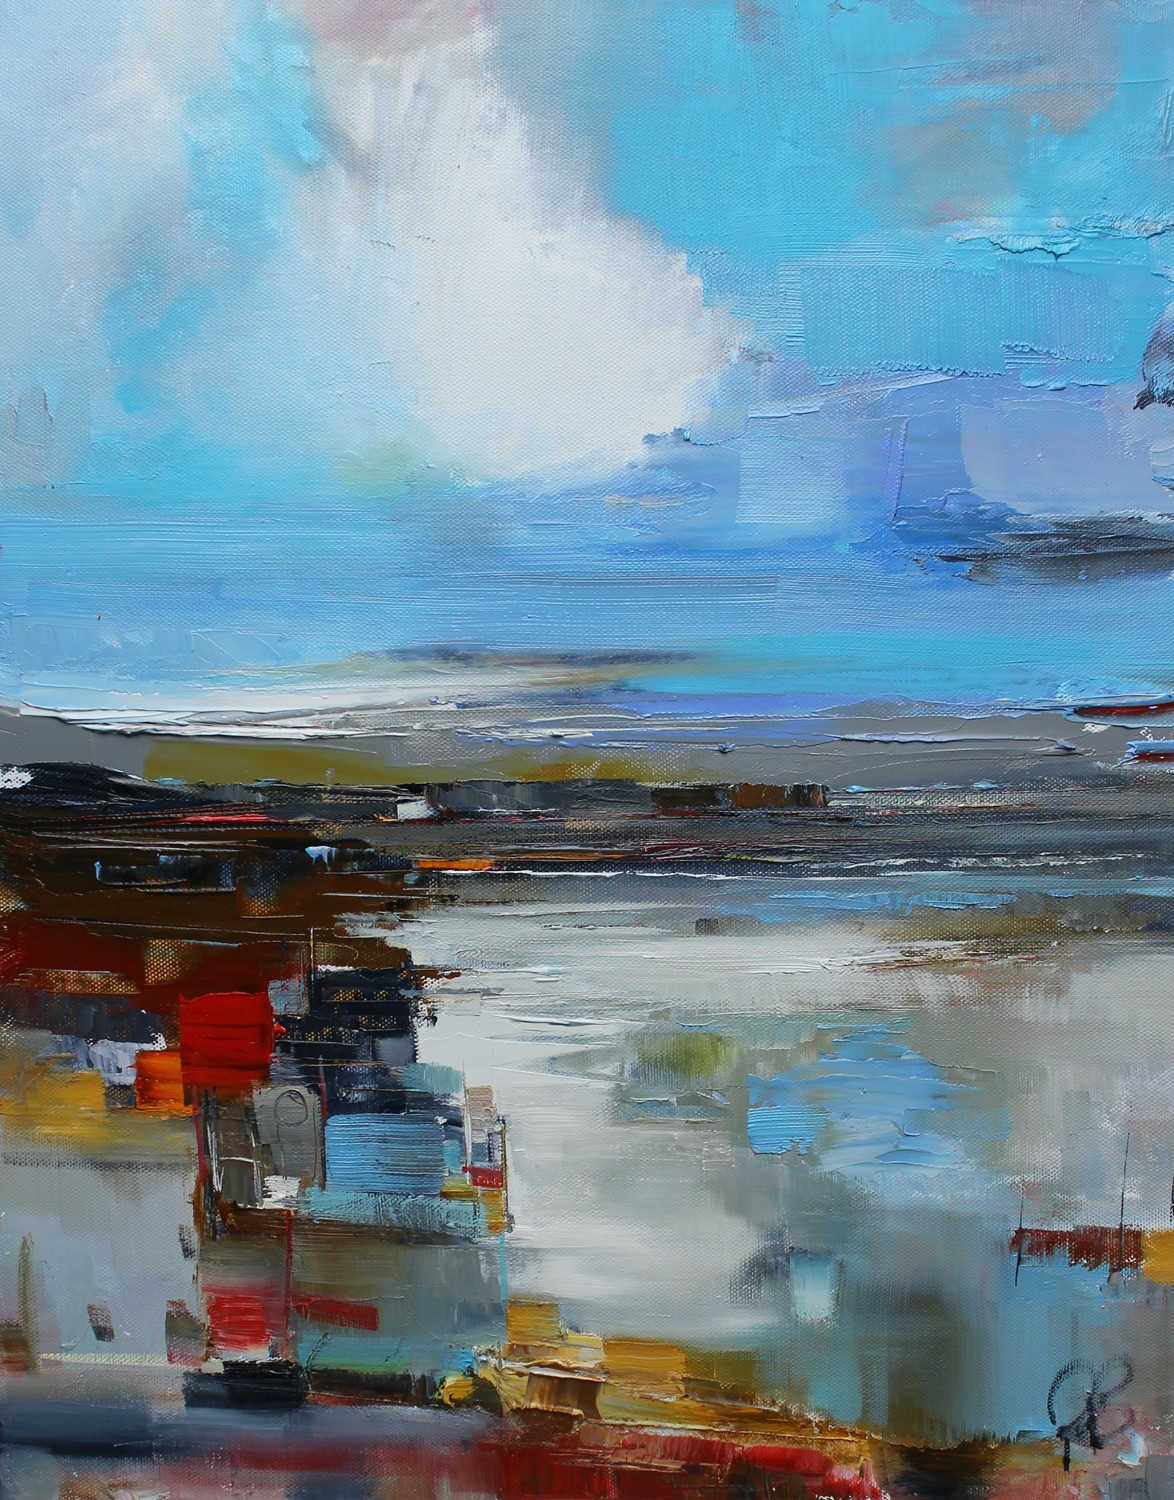 'Exploring the jetty' by artist Rosanne Barr